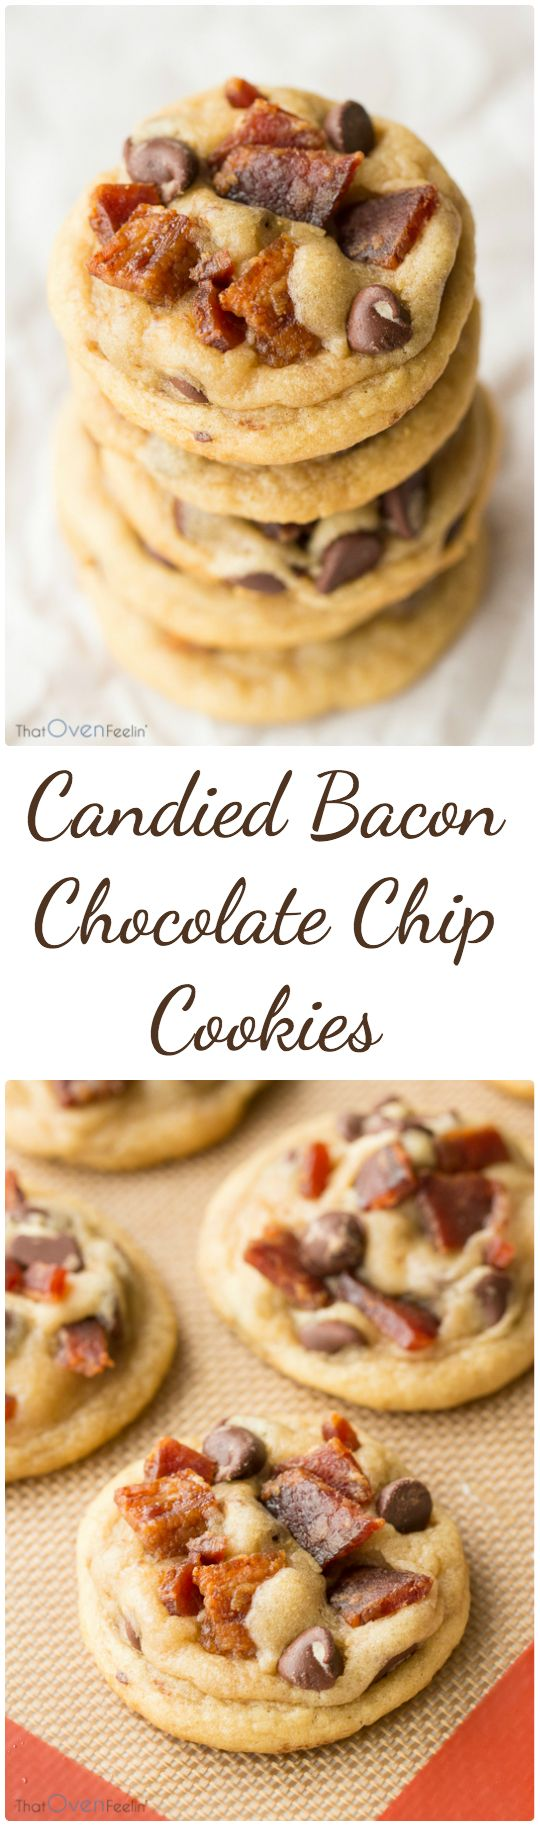 Candied Bacon Chocolate Chip Cookies... I am doing this!! THESE WERE GOOD... A LOT OF WORK BUT NOT BAD. MADE BACON WITH JUST BROWN SUGAR, COLD OVEN WHILE HEATING TO 400... WILL MAKE AGAIN